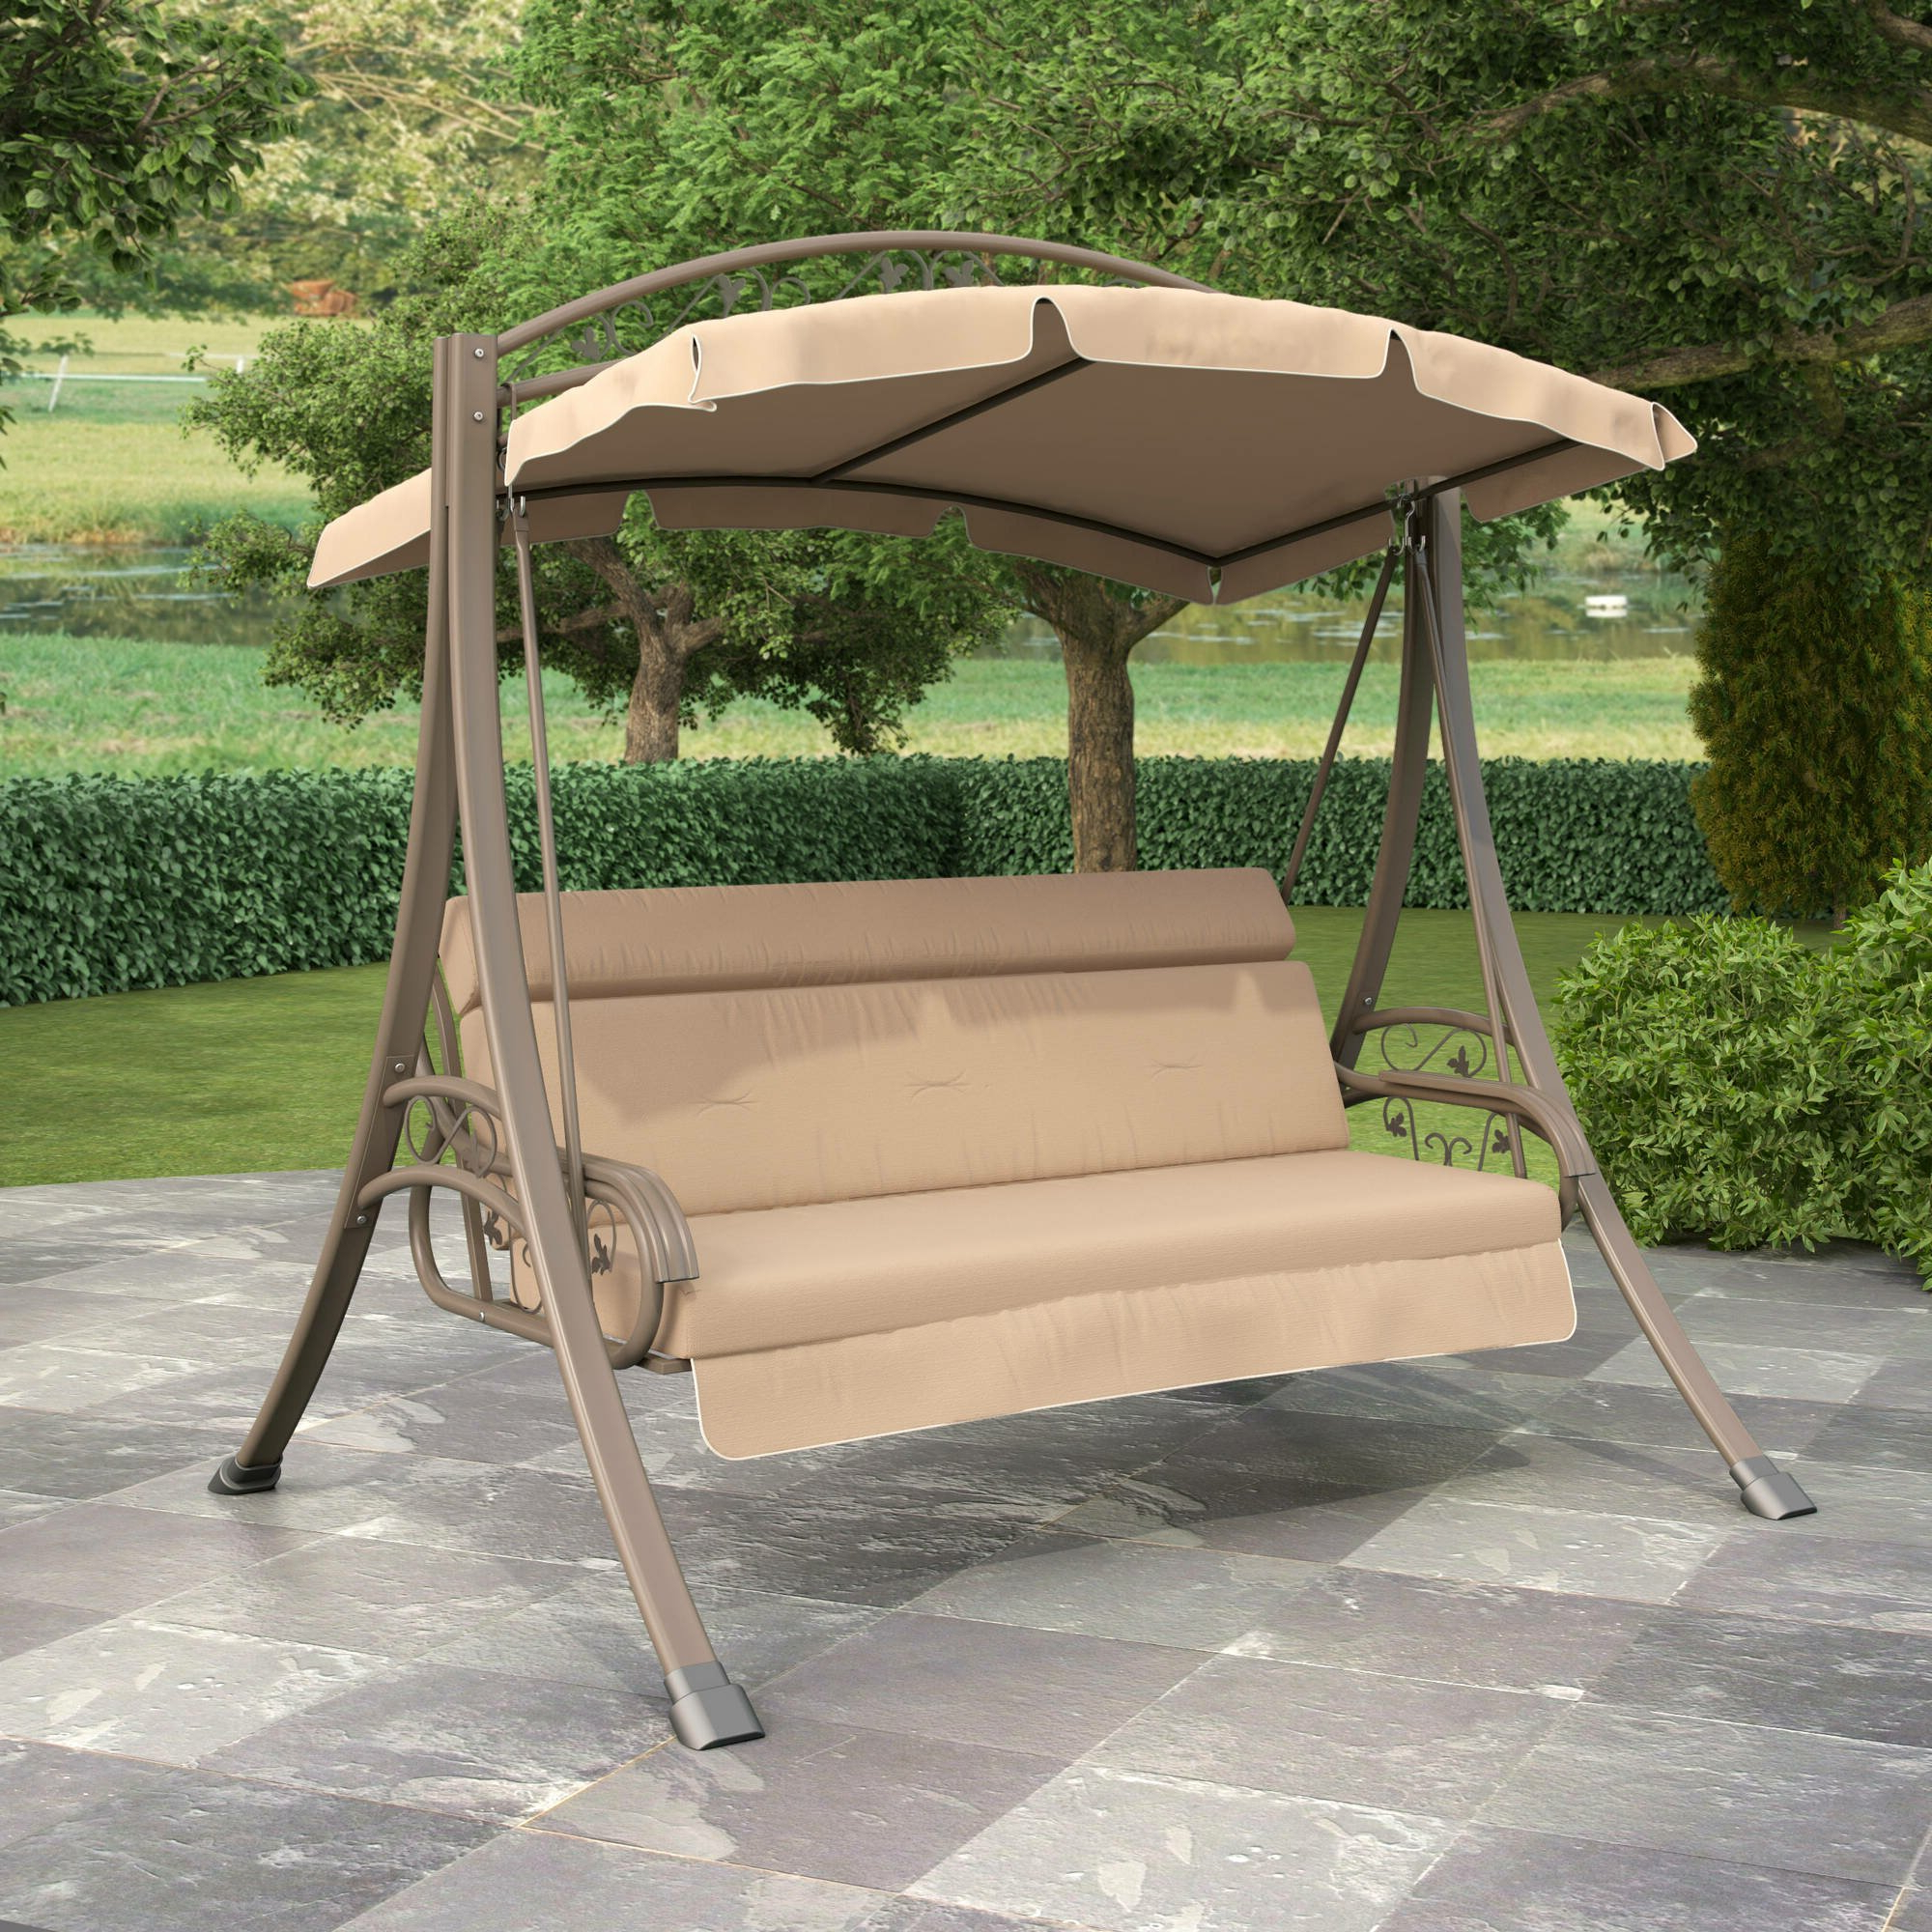 2019 2 Person Hammock Porch Swing Patio Outdoor Hanging Loveseat Canopy Glider Swings Within Patio Garden Swings Ebay (View 24 of 30)